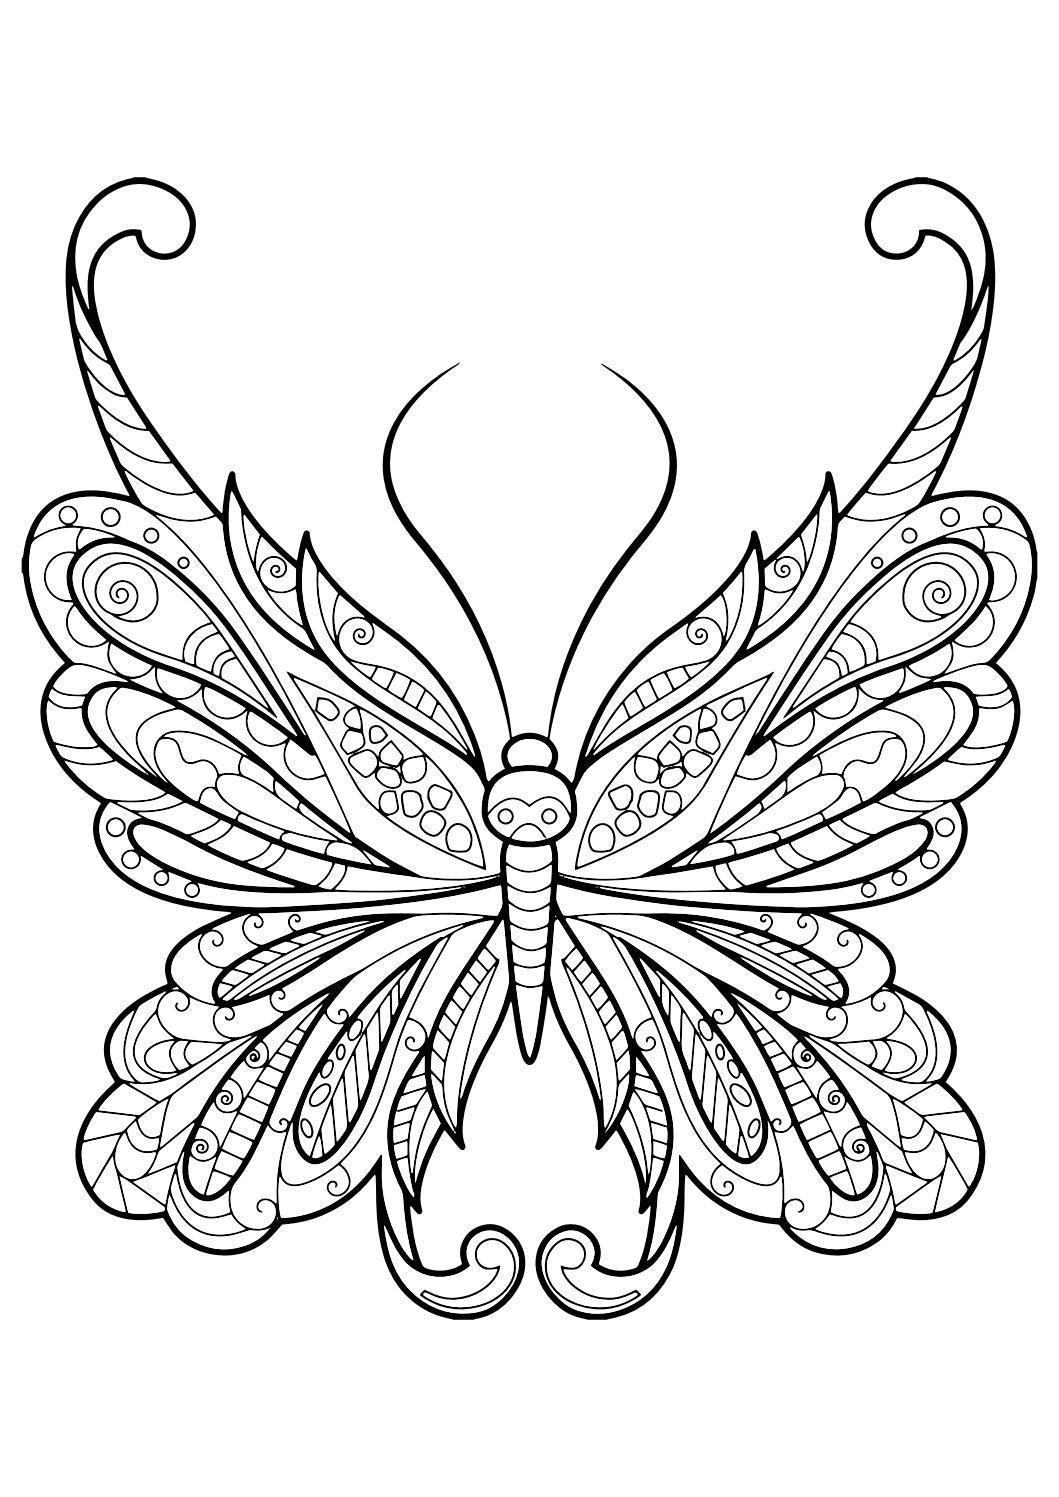 25 Amazing Photo Of Butterflies Coloring Pages Davemelillo Com Butterfly Coloring Page Flower Coloring Pages Butterfly Coloring